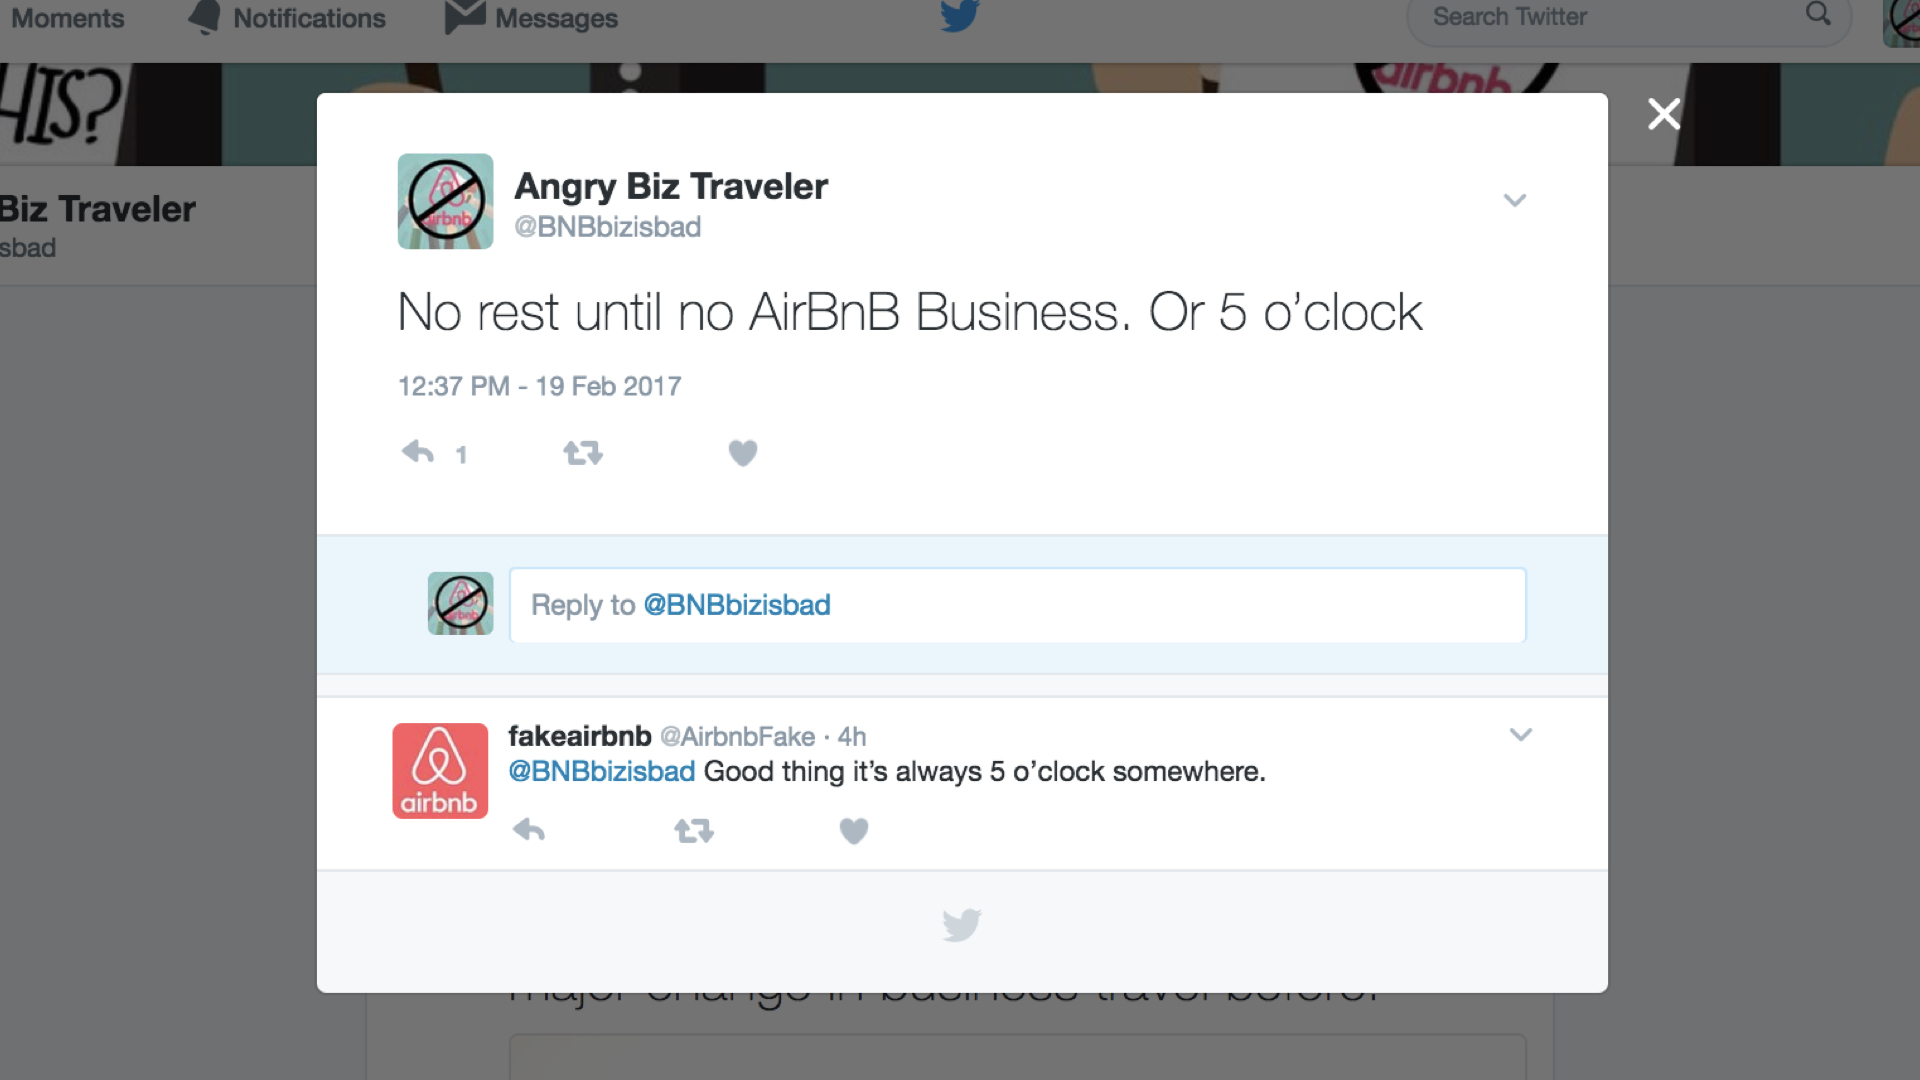 - AirBnB will respond to the movement on social media, and we'll create a back and forth conversation we can control.